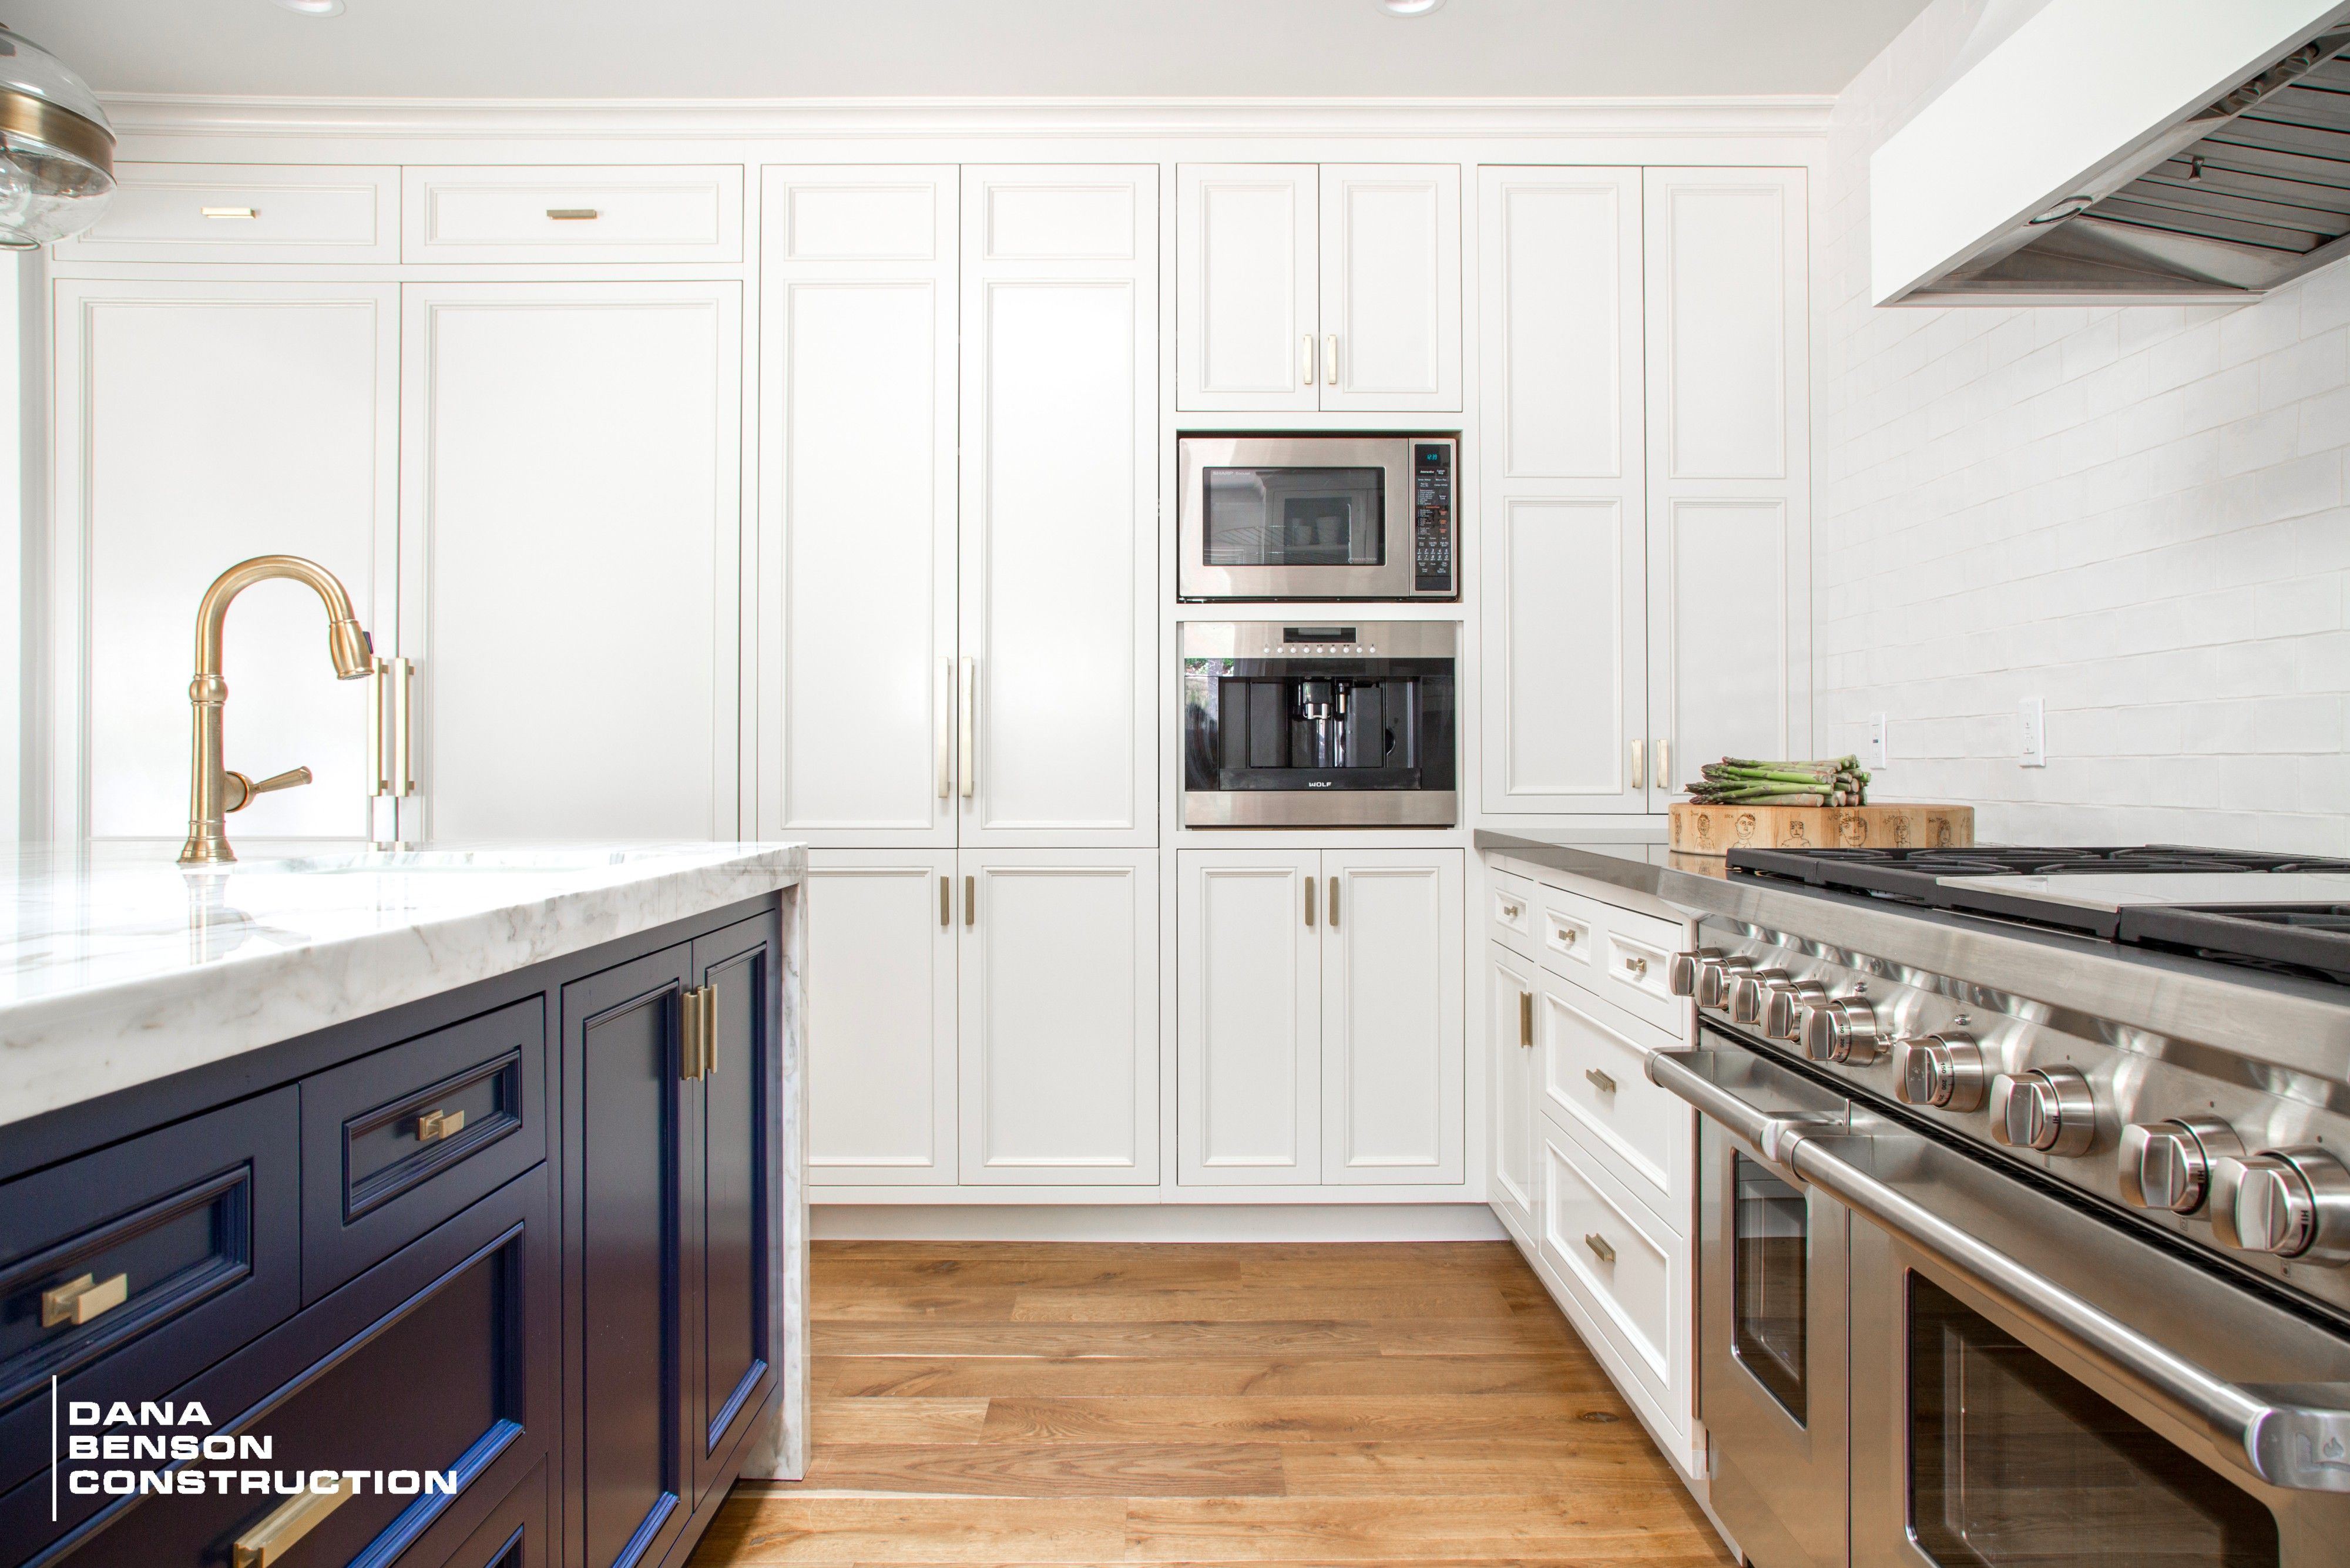 Spanish Transitional To Modern Style Kitchen With Black And White Cabinets  And Gold Finishes Design And Build By Dana Benson Construction